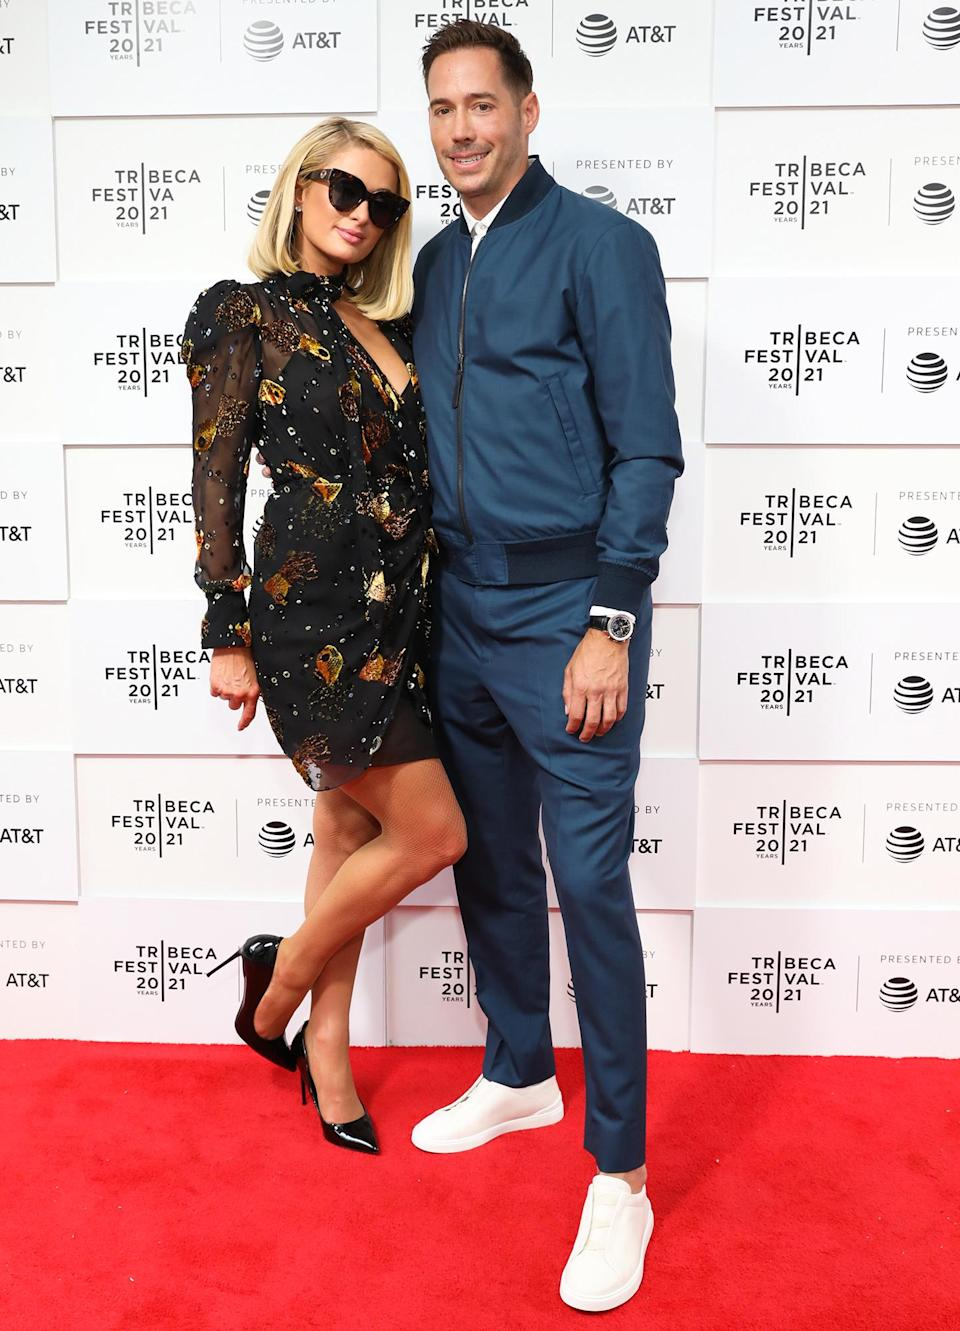 <p>Paris Hilton pops her foot while joining fiancé Carter Reum at the Tribeca Film Festival premiere of her documentary <em>This Is Paris</em> in N.Y.C. on June 20.</p>